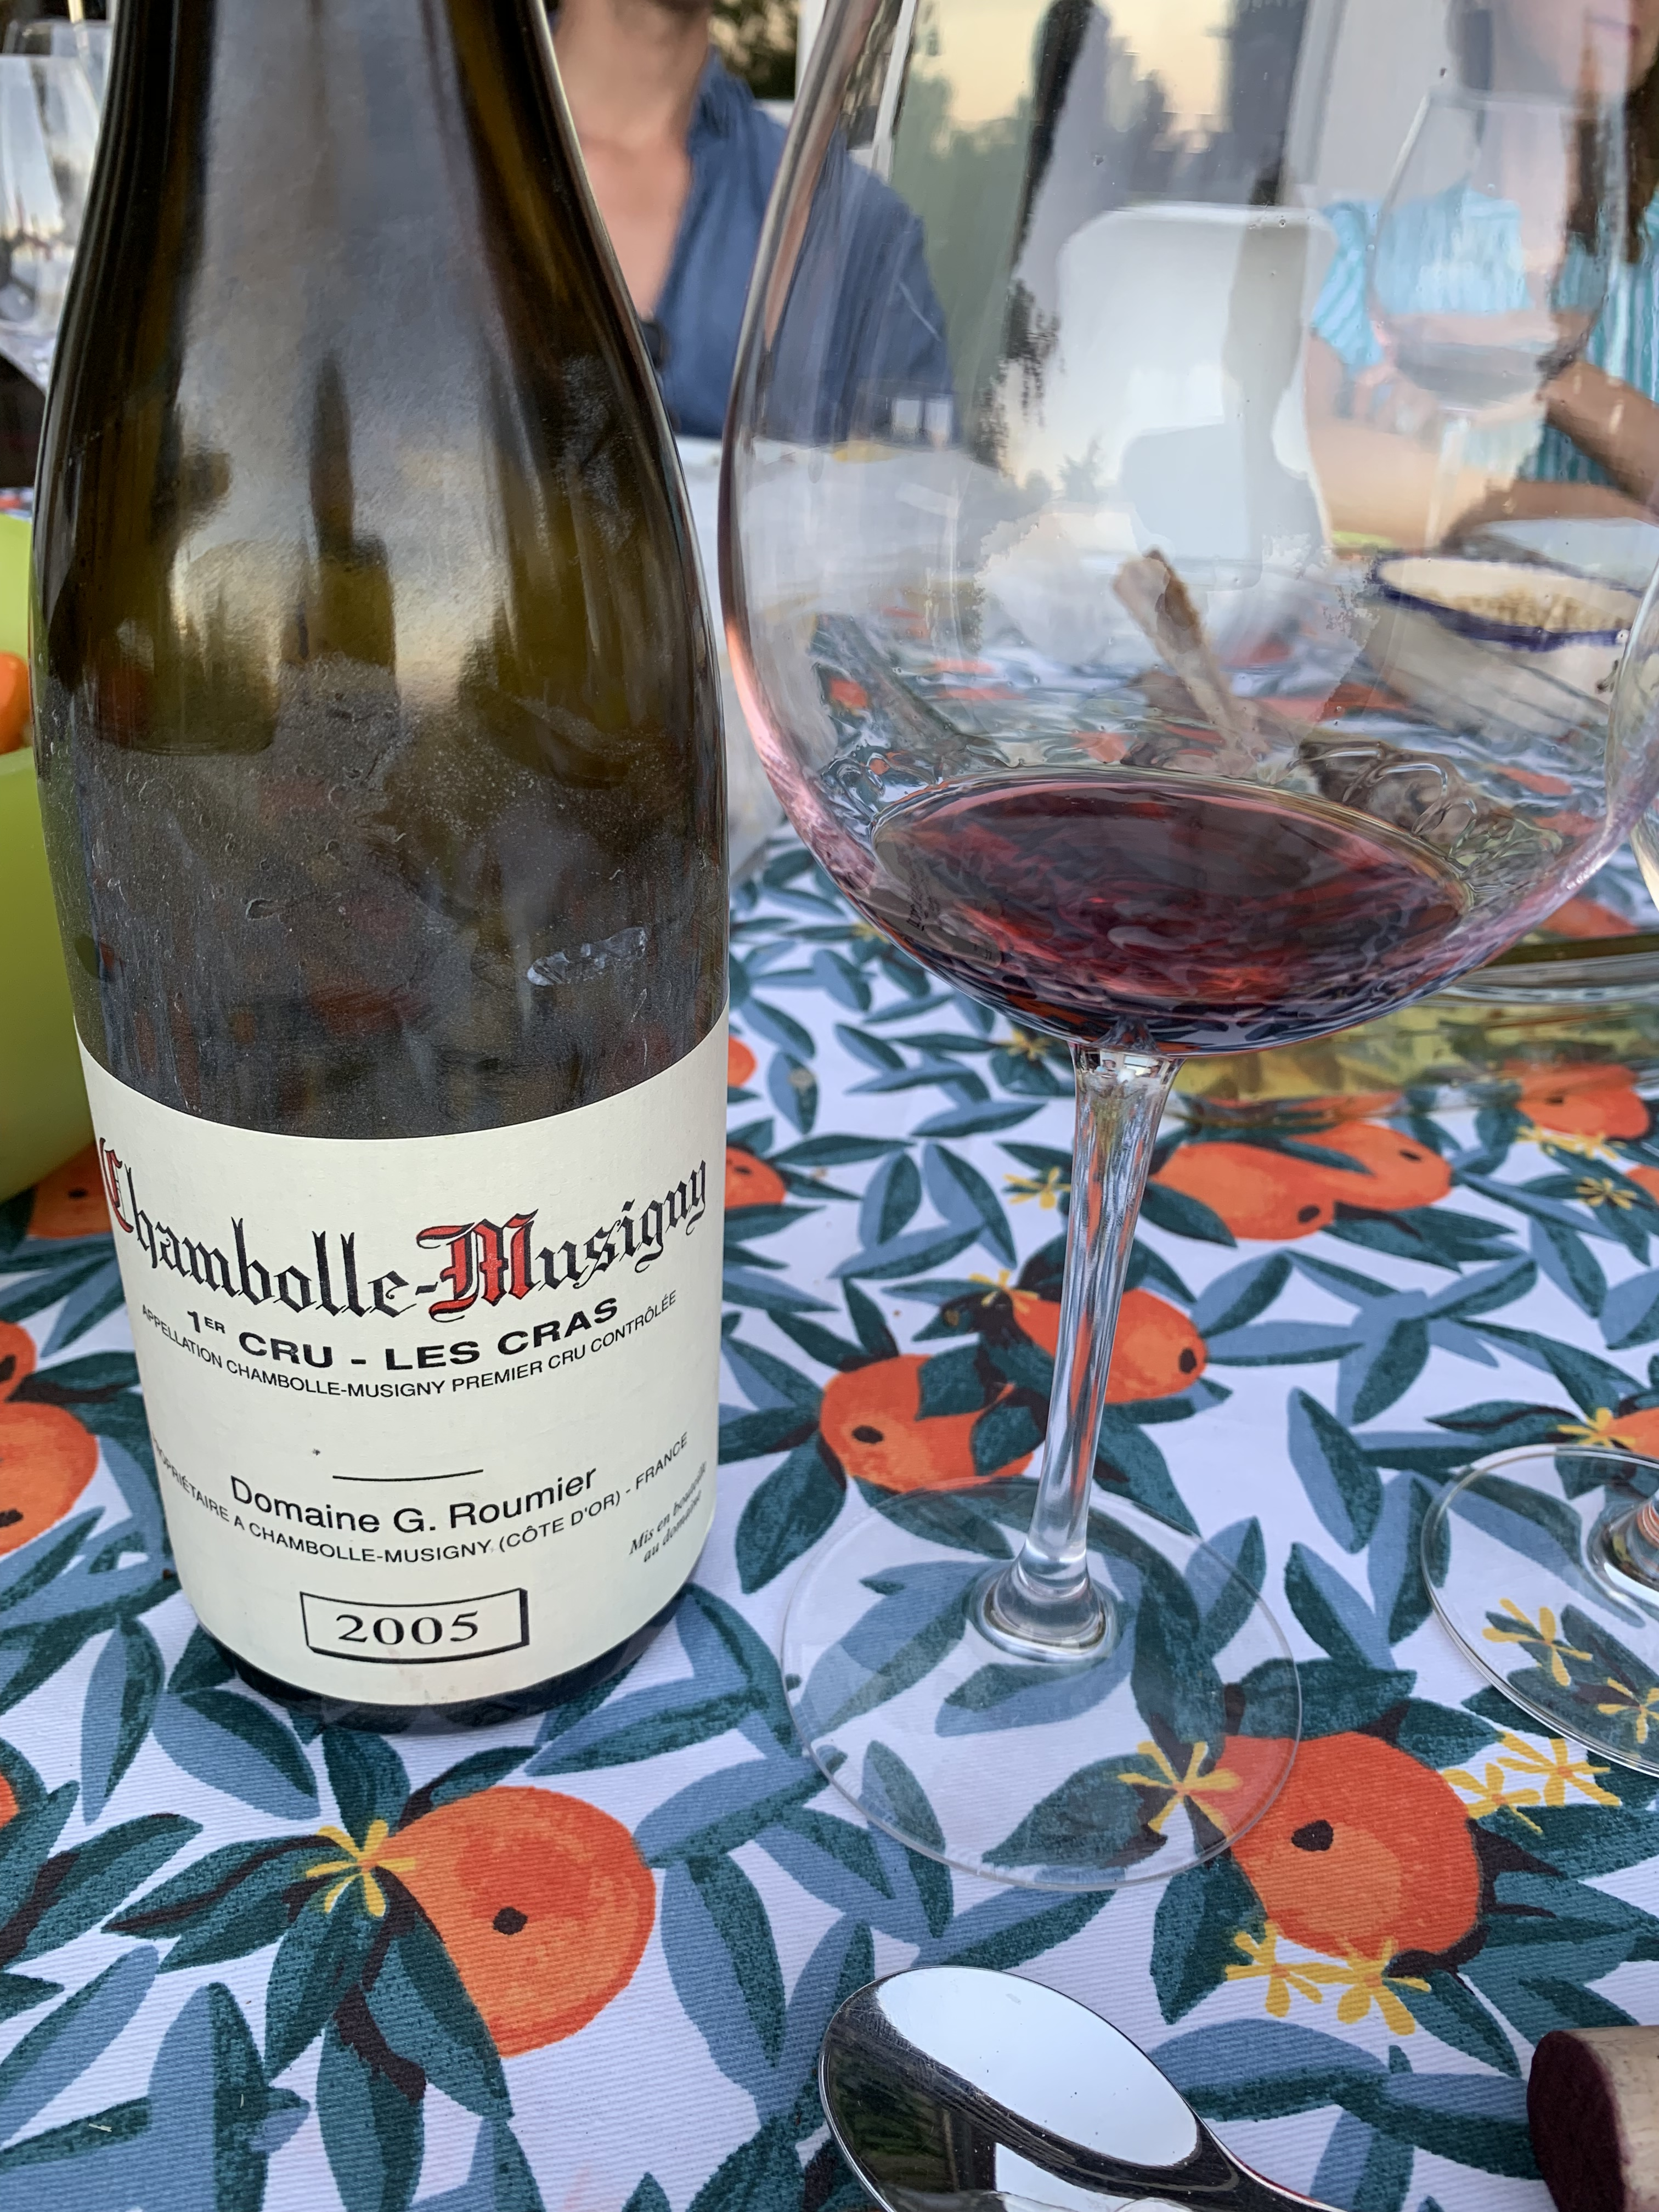 Chambolle Musigny premier cru les cras Roumier 2005